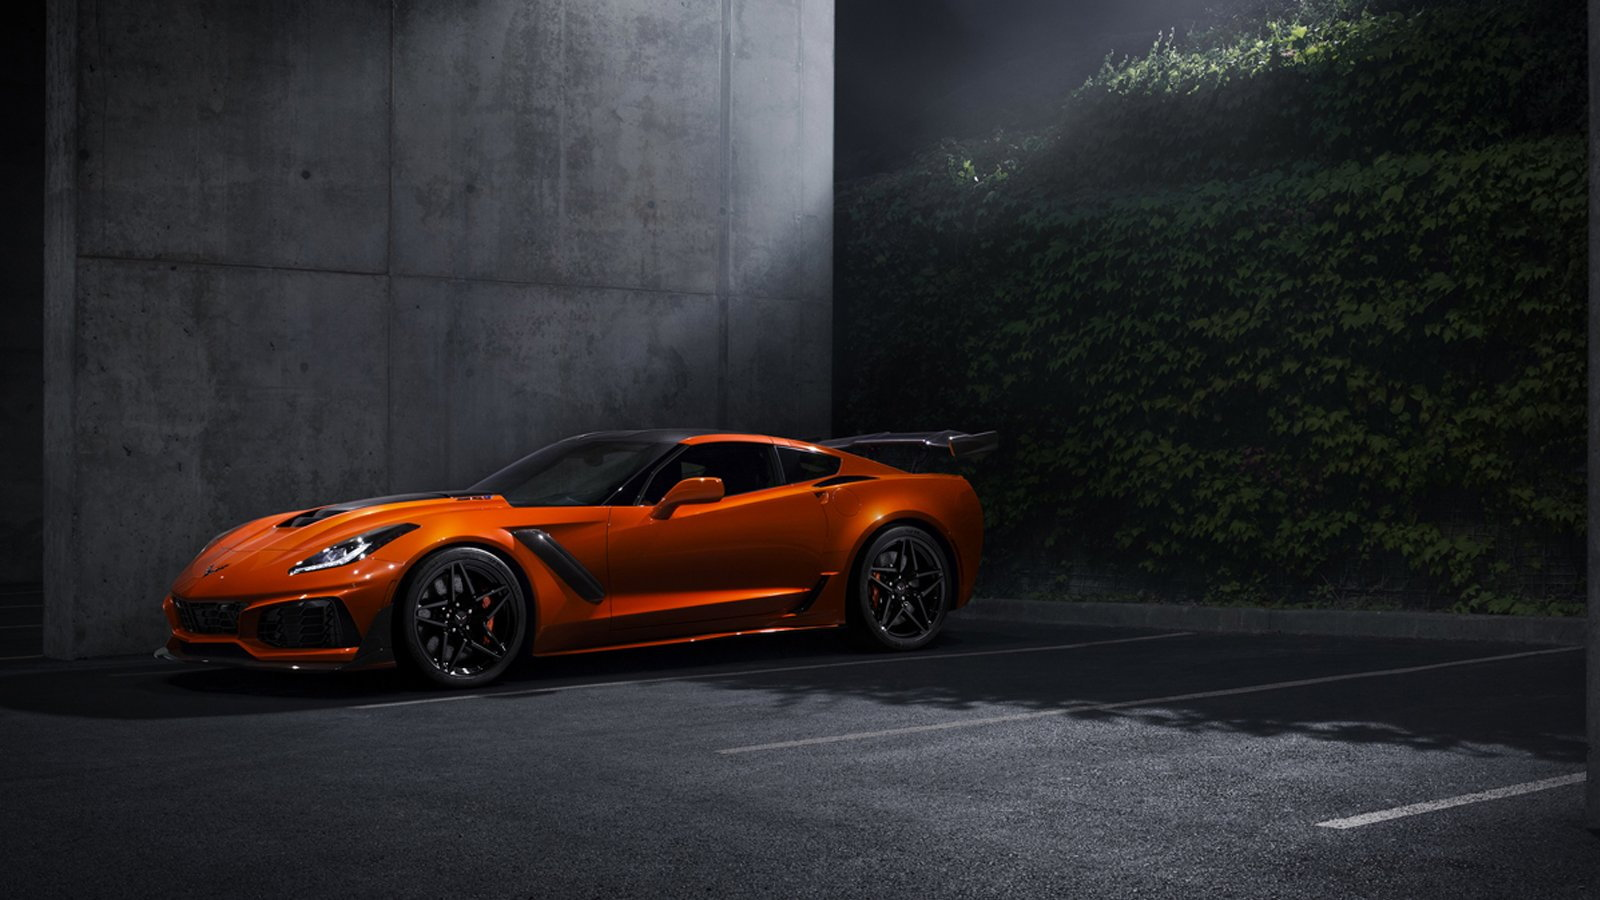 Corvette ZR1 Crate Engine: What You Need to Know